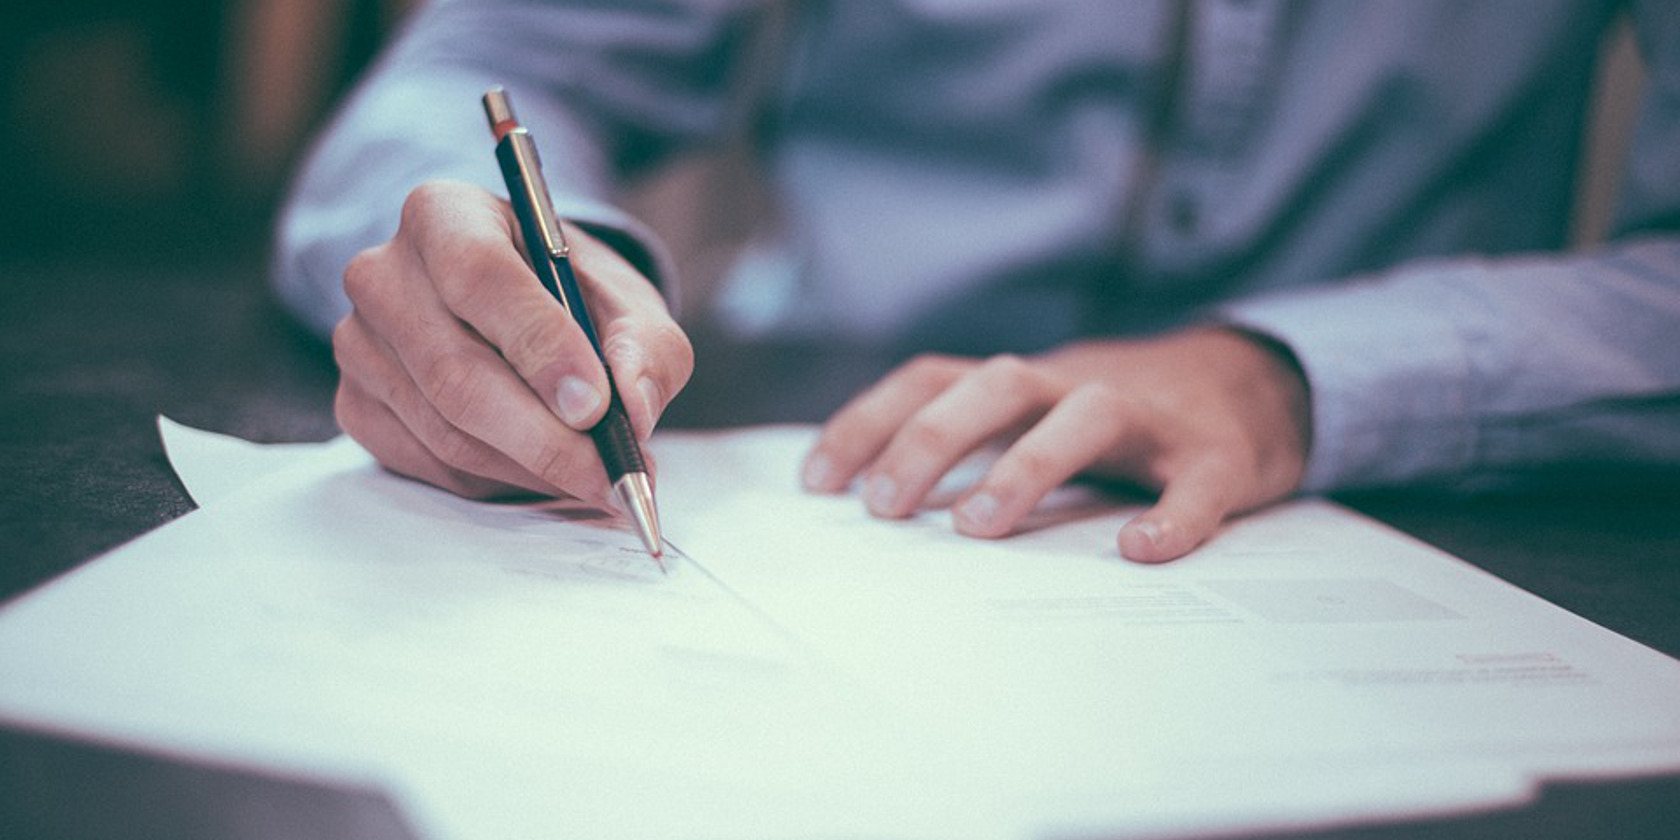 A man dressed smartly writing out his CV with a pen and paper